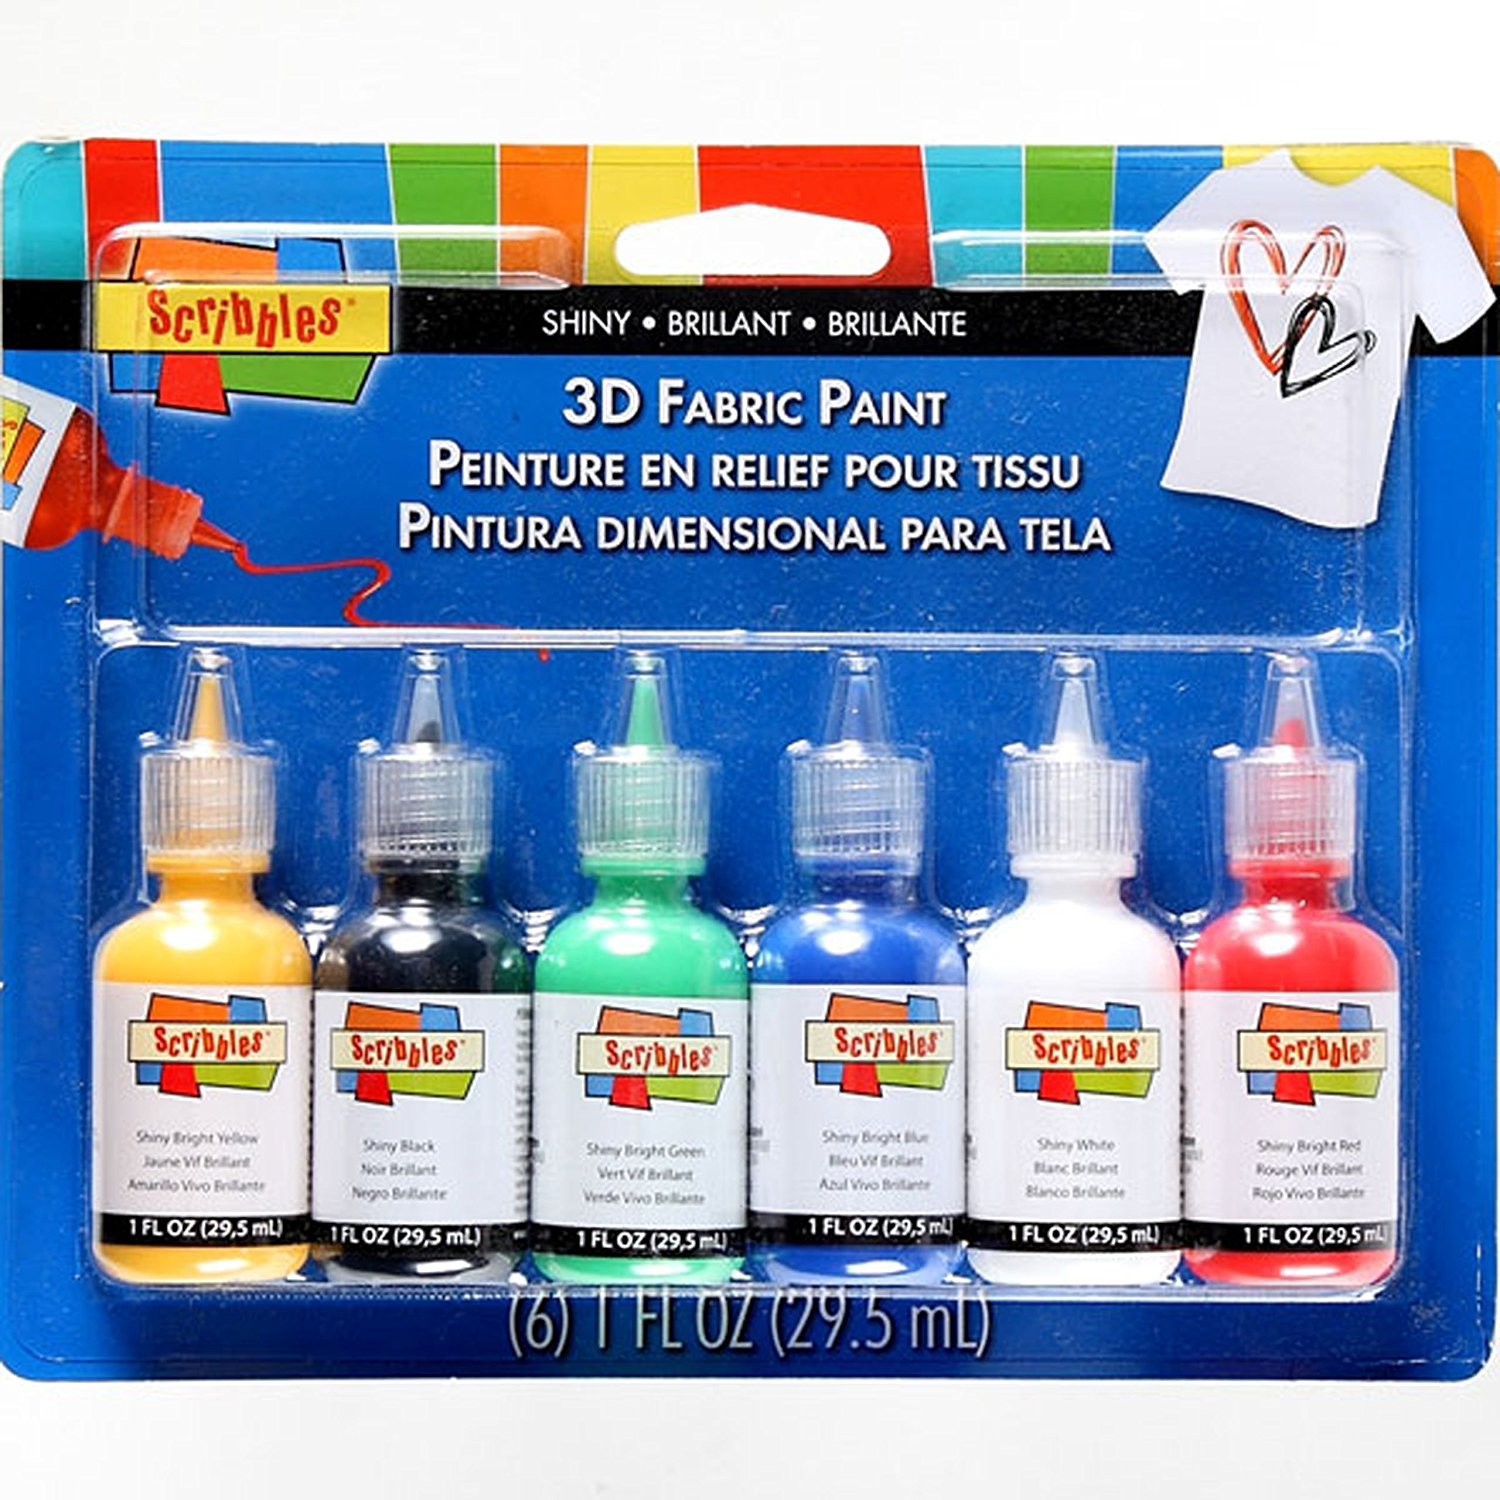 18534 Dimensional Fabric Paint, Shiny, 6-Pack, The Scribbles Shiny set includes Bright Yellow, Black, Bright Green, Bright Blue, White and Bright Red, all in the.., By Scribbles